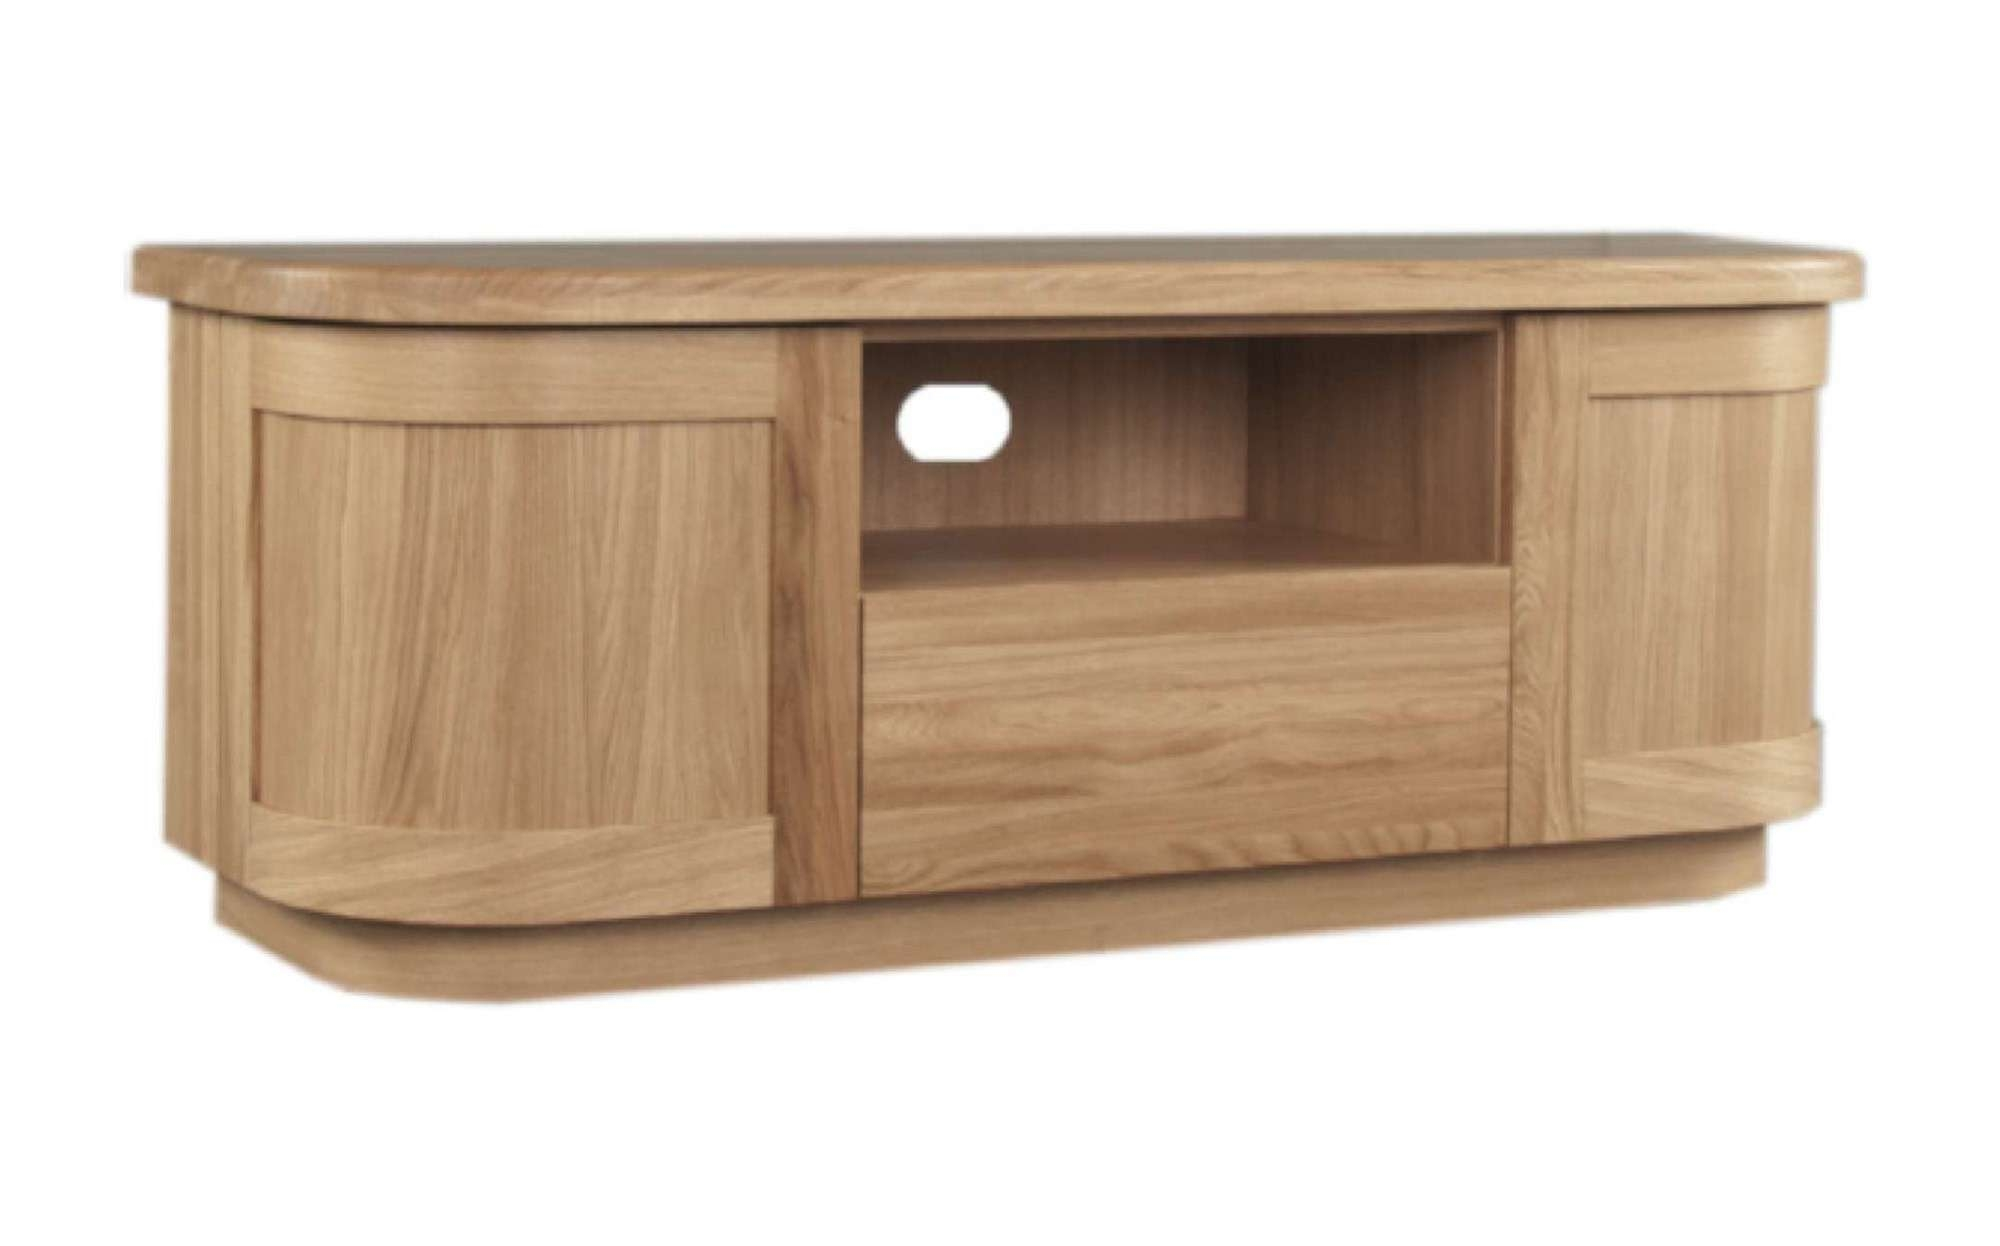 Sicily Solid Oak Tv Unit | Ice Interiors For Oak Tv Cabinets (View 17 of 20)